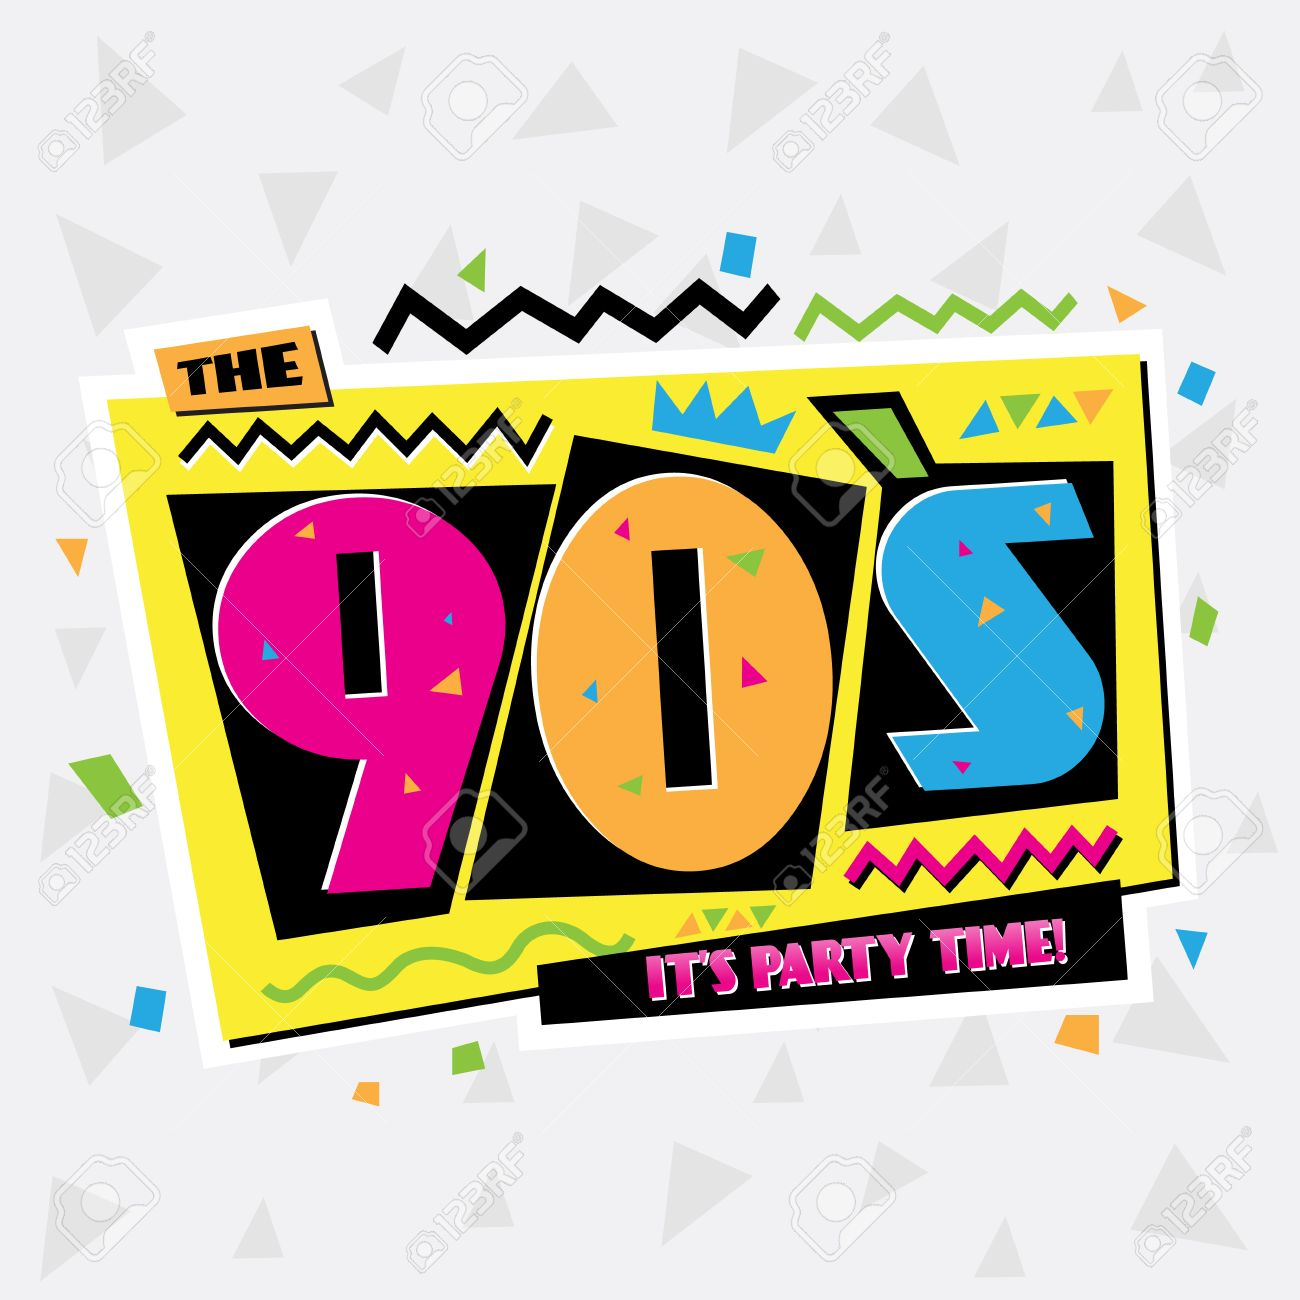 Party Time Party Time The 90s Style Label Vector Illustration